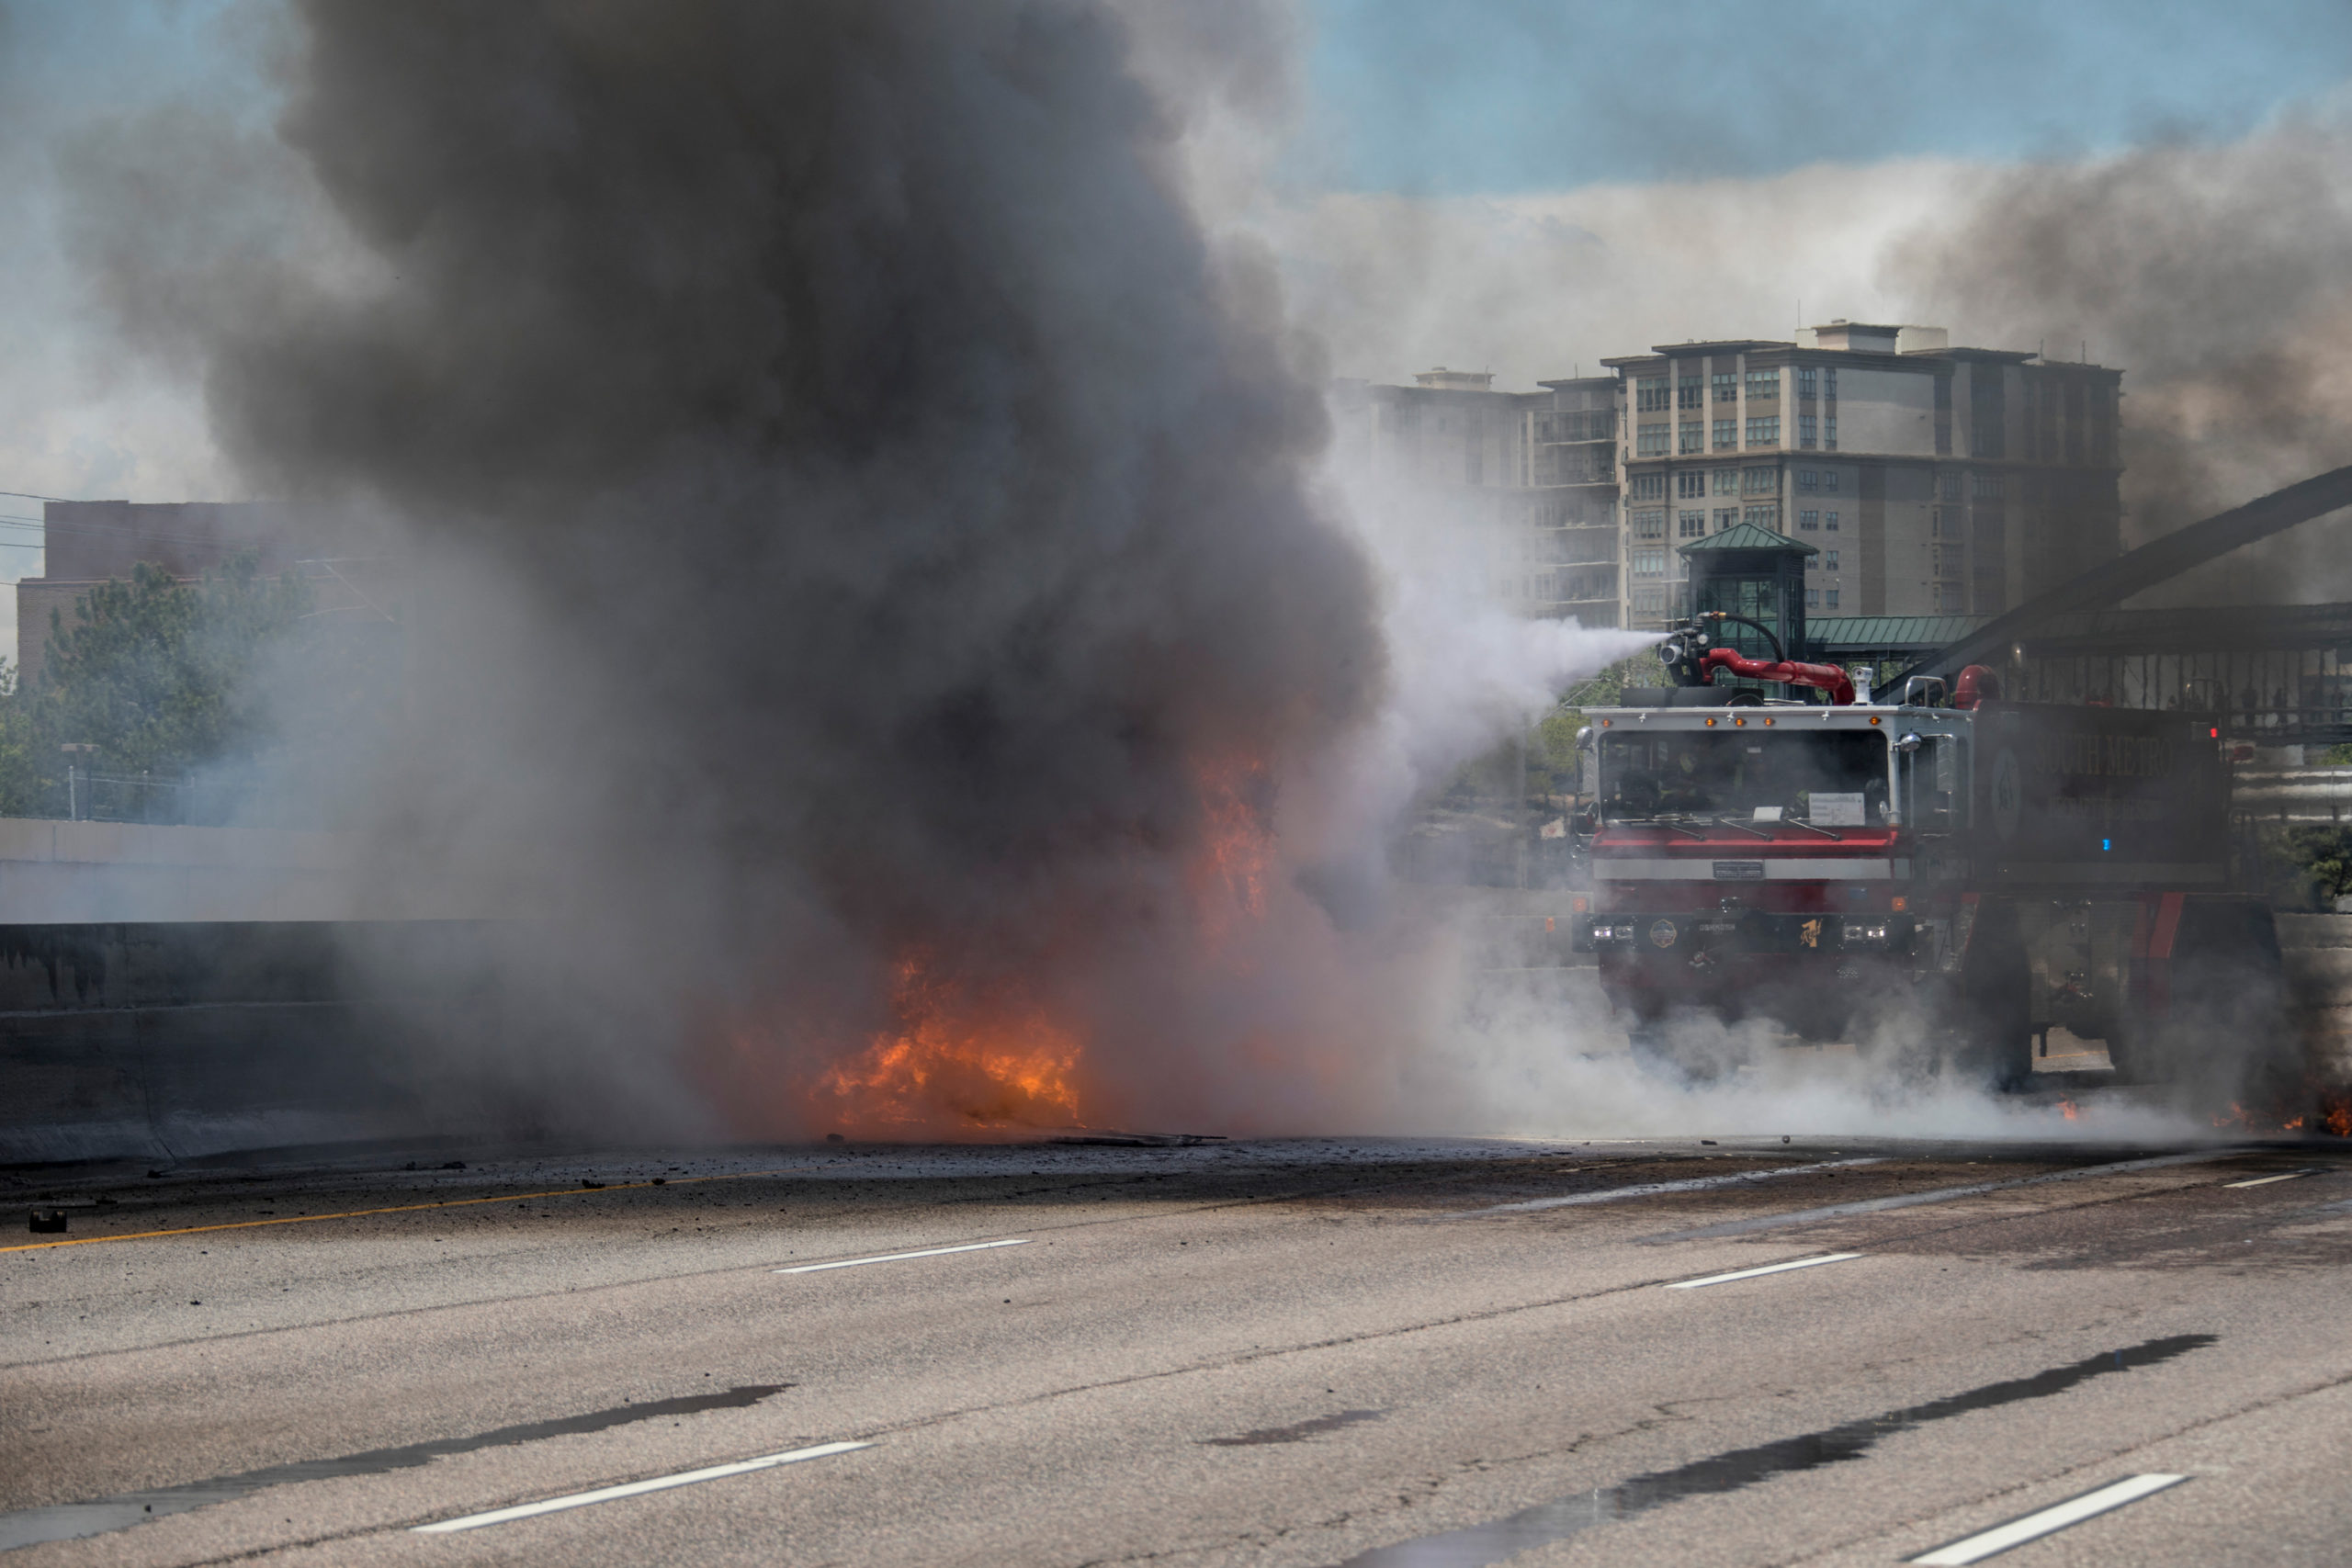 I-25 was closed in Greenwood Village for hours on May 31, 2017 after a fuel truck crashed and was engulfed in flames. South Metro Firefighters used aqueous film forming foam (AFFF), specially designed for flammable liquids, to fully extinguish the fire.